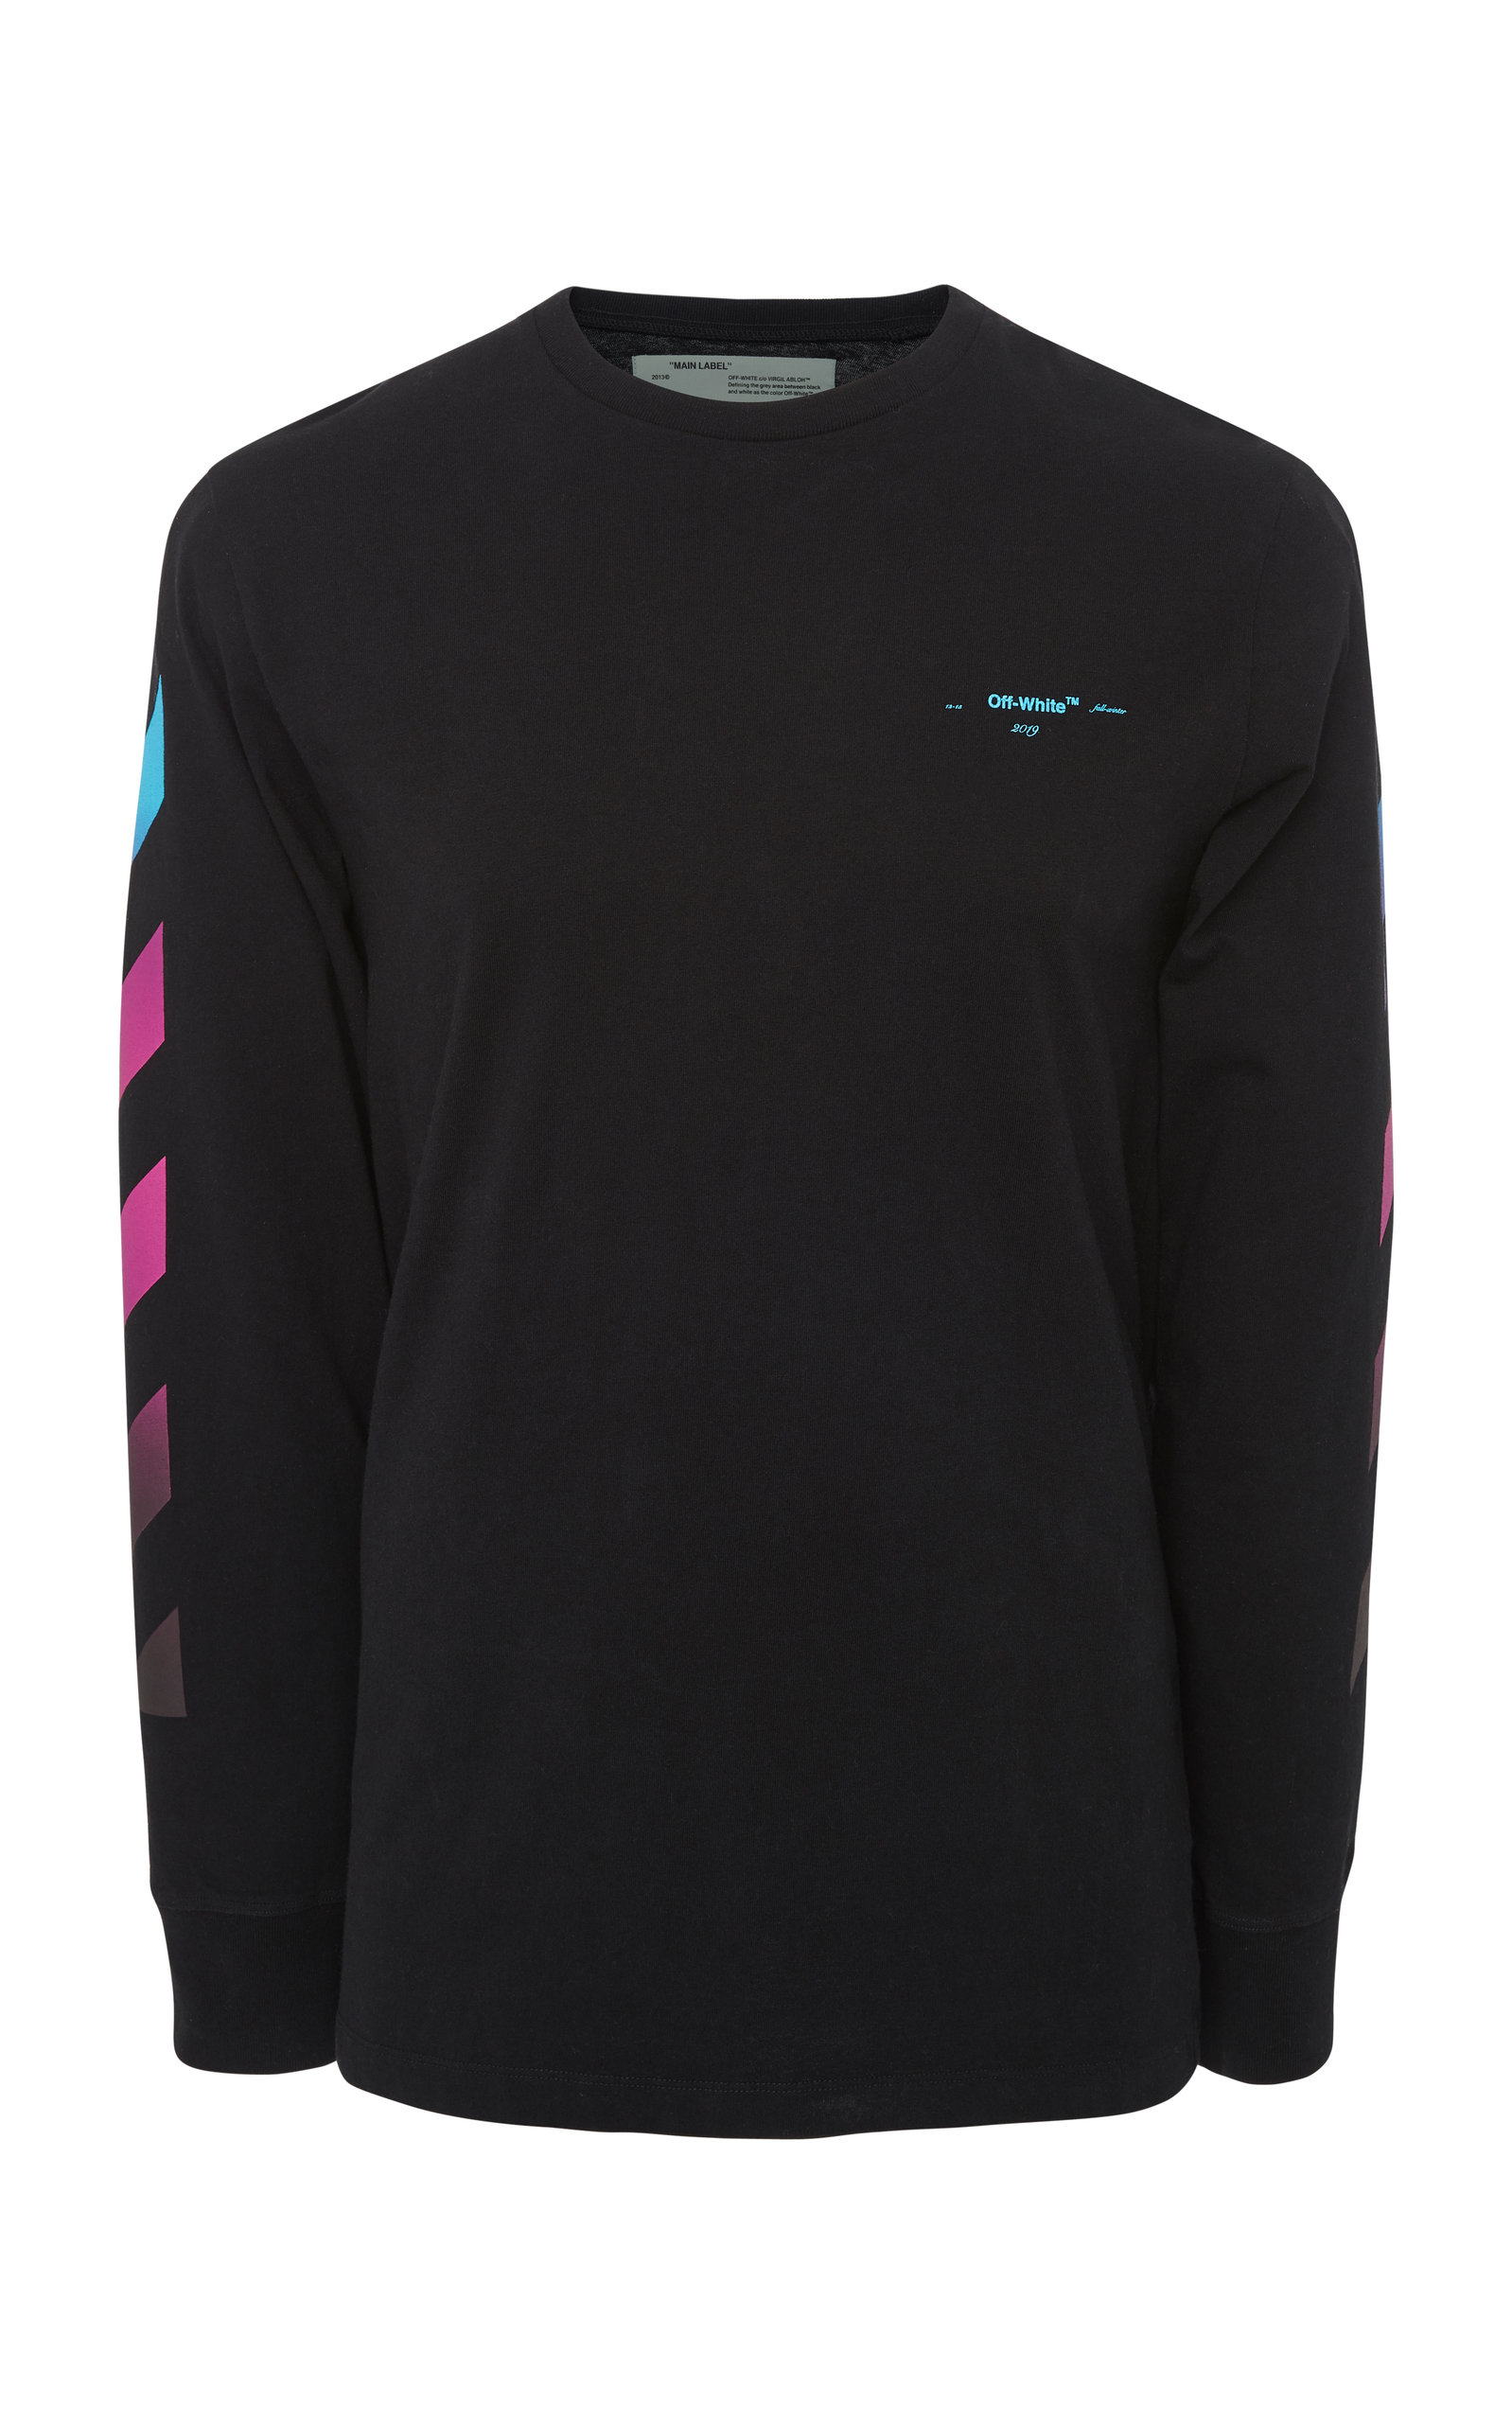 4c0bcf0a Gradient Logo Long Sleeve T-Shirt by Off-White c/o Virgil Abloh ...